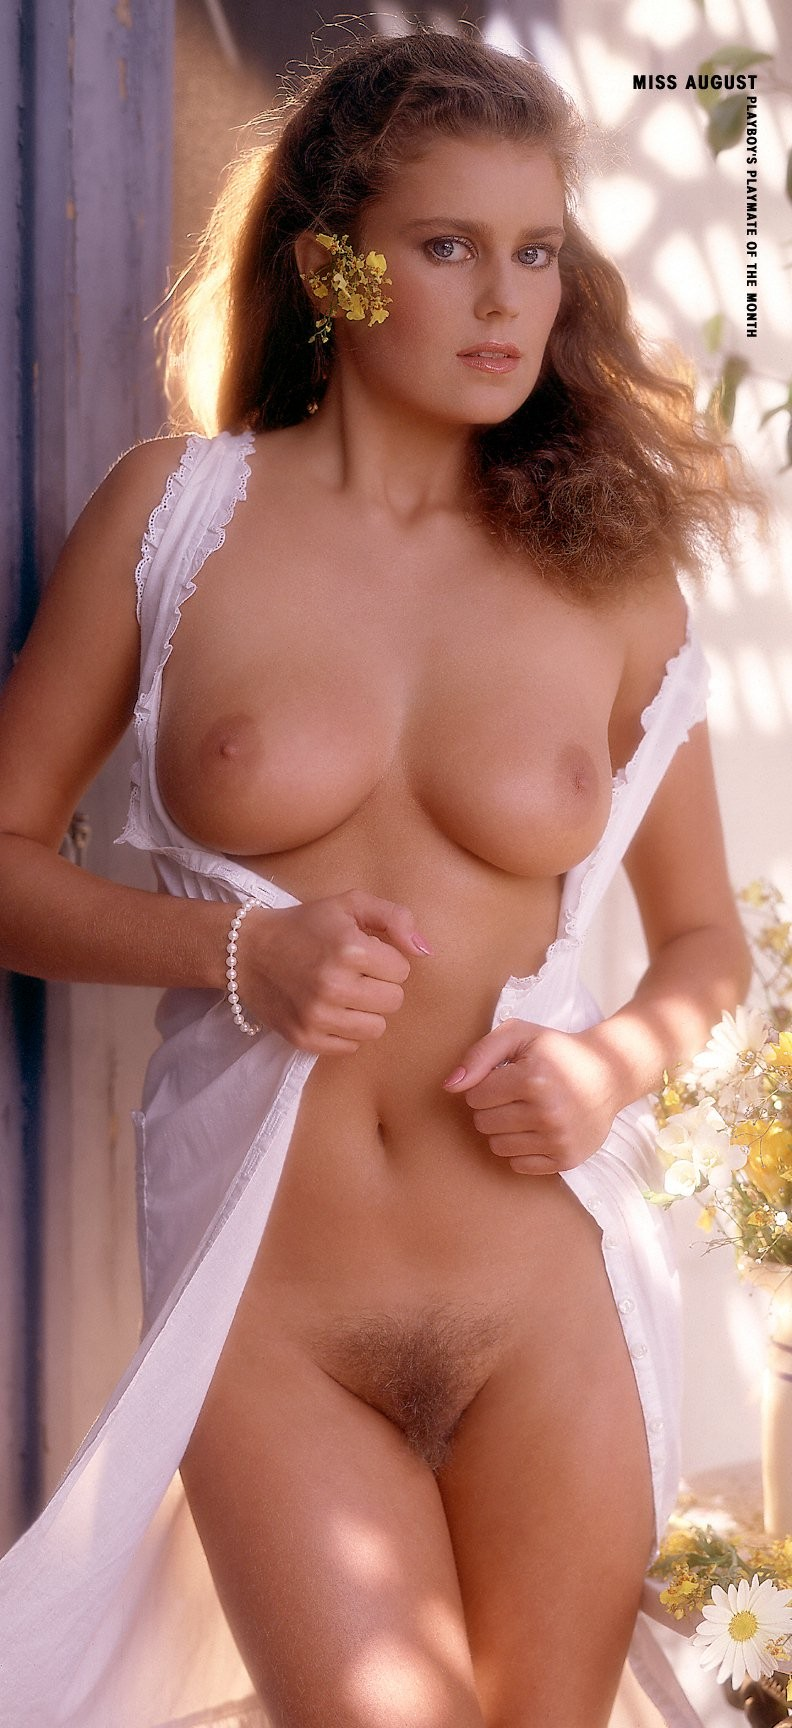 Playmates From The 80S - Redbust-8296